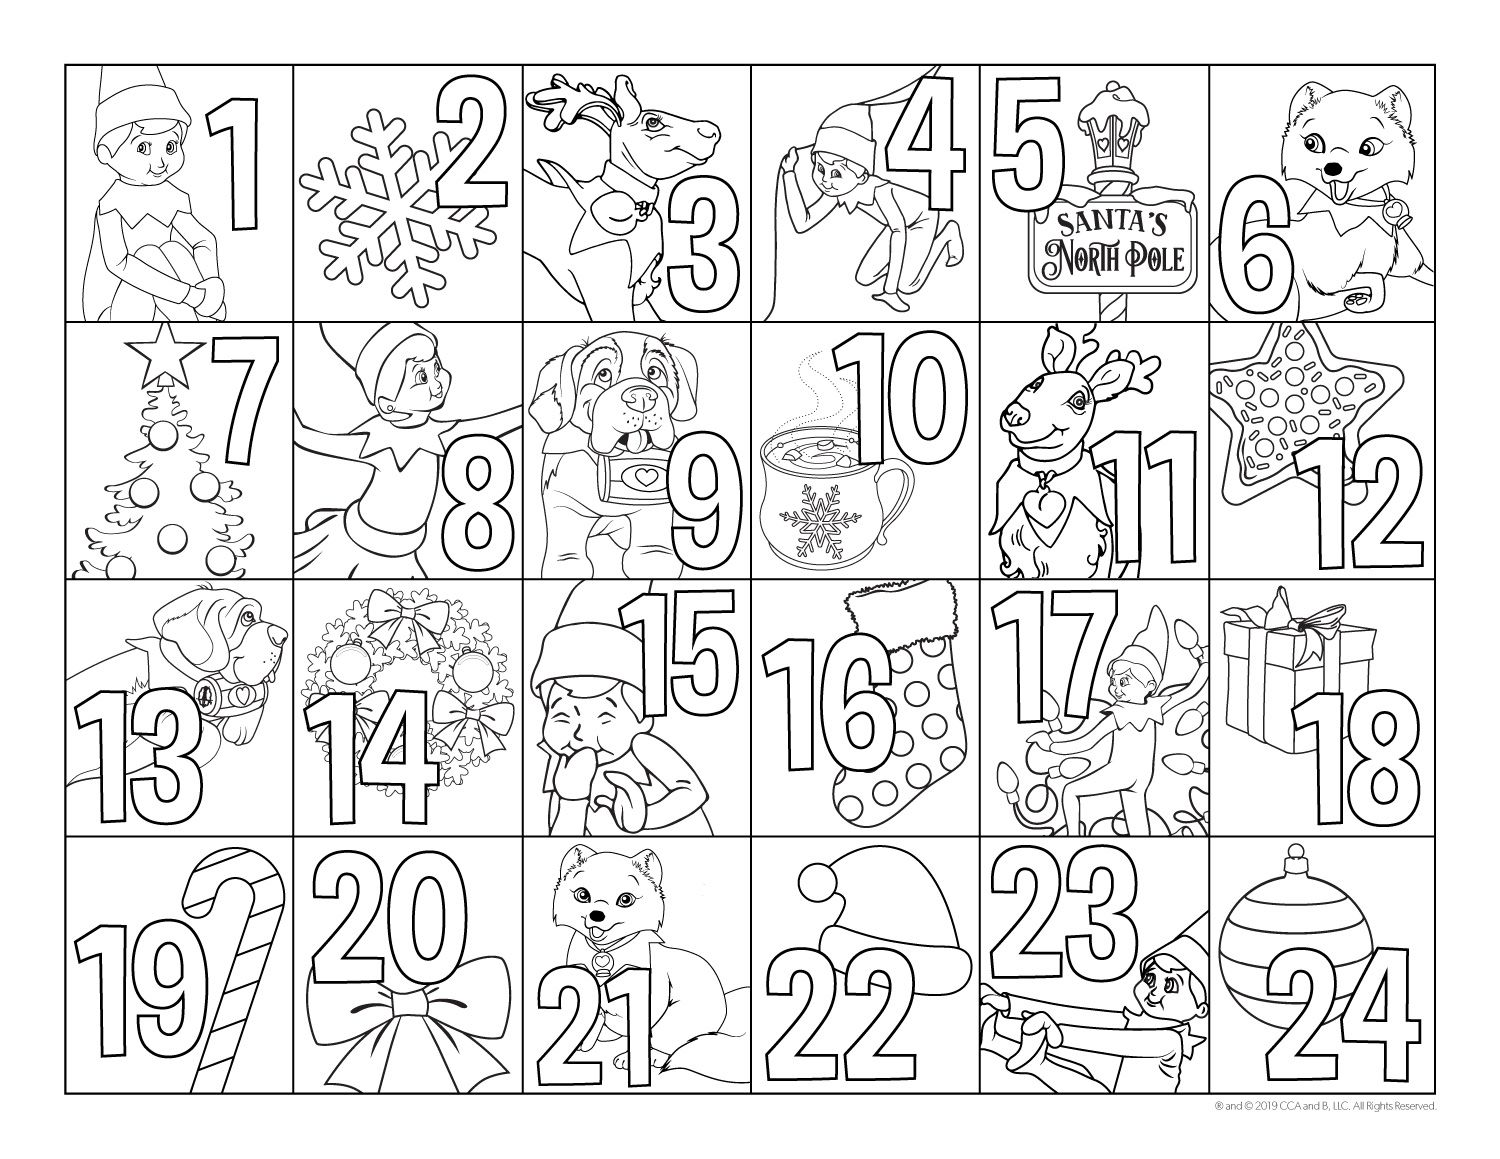 Pin By Ashley Eason On Elf Pets Advent Coloring Printable Advent Calendar Christmas Coloring Pages